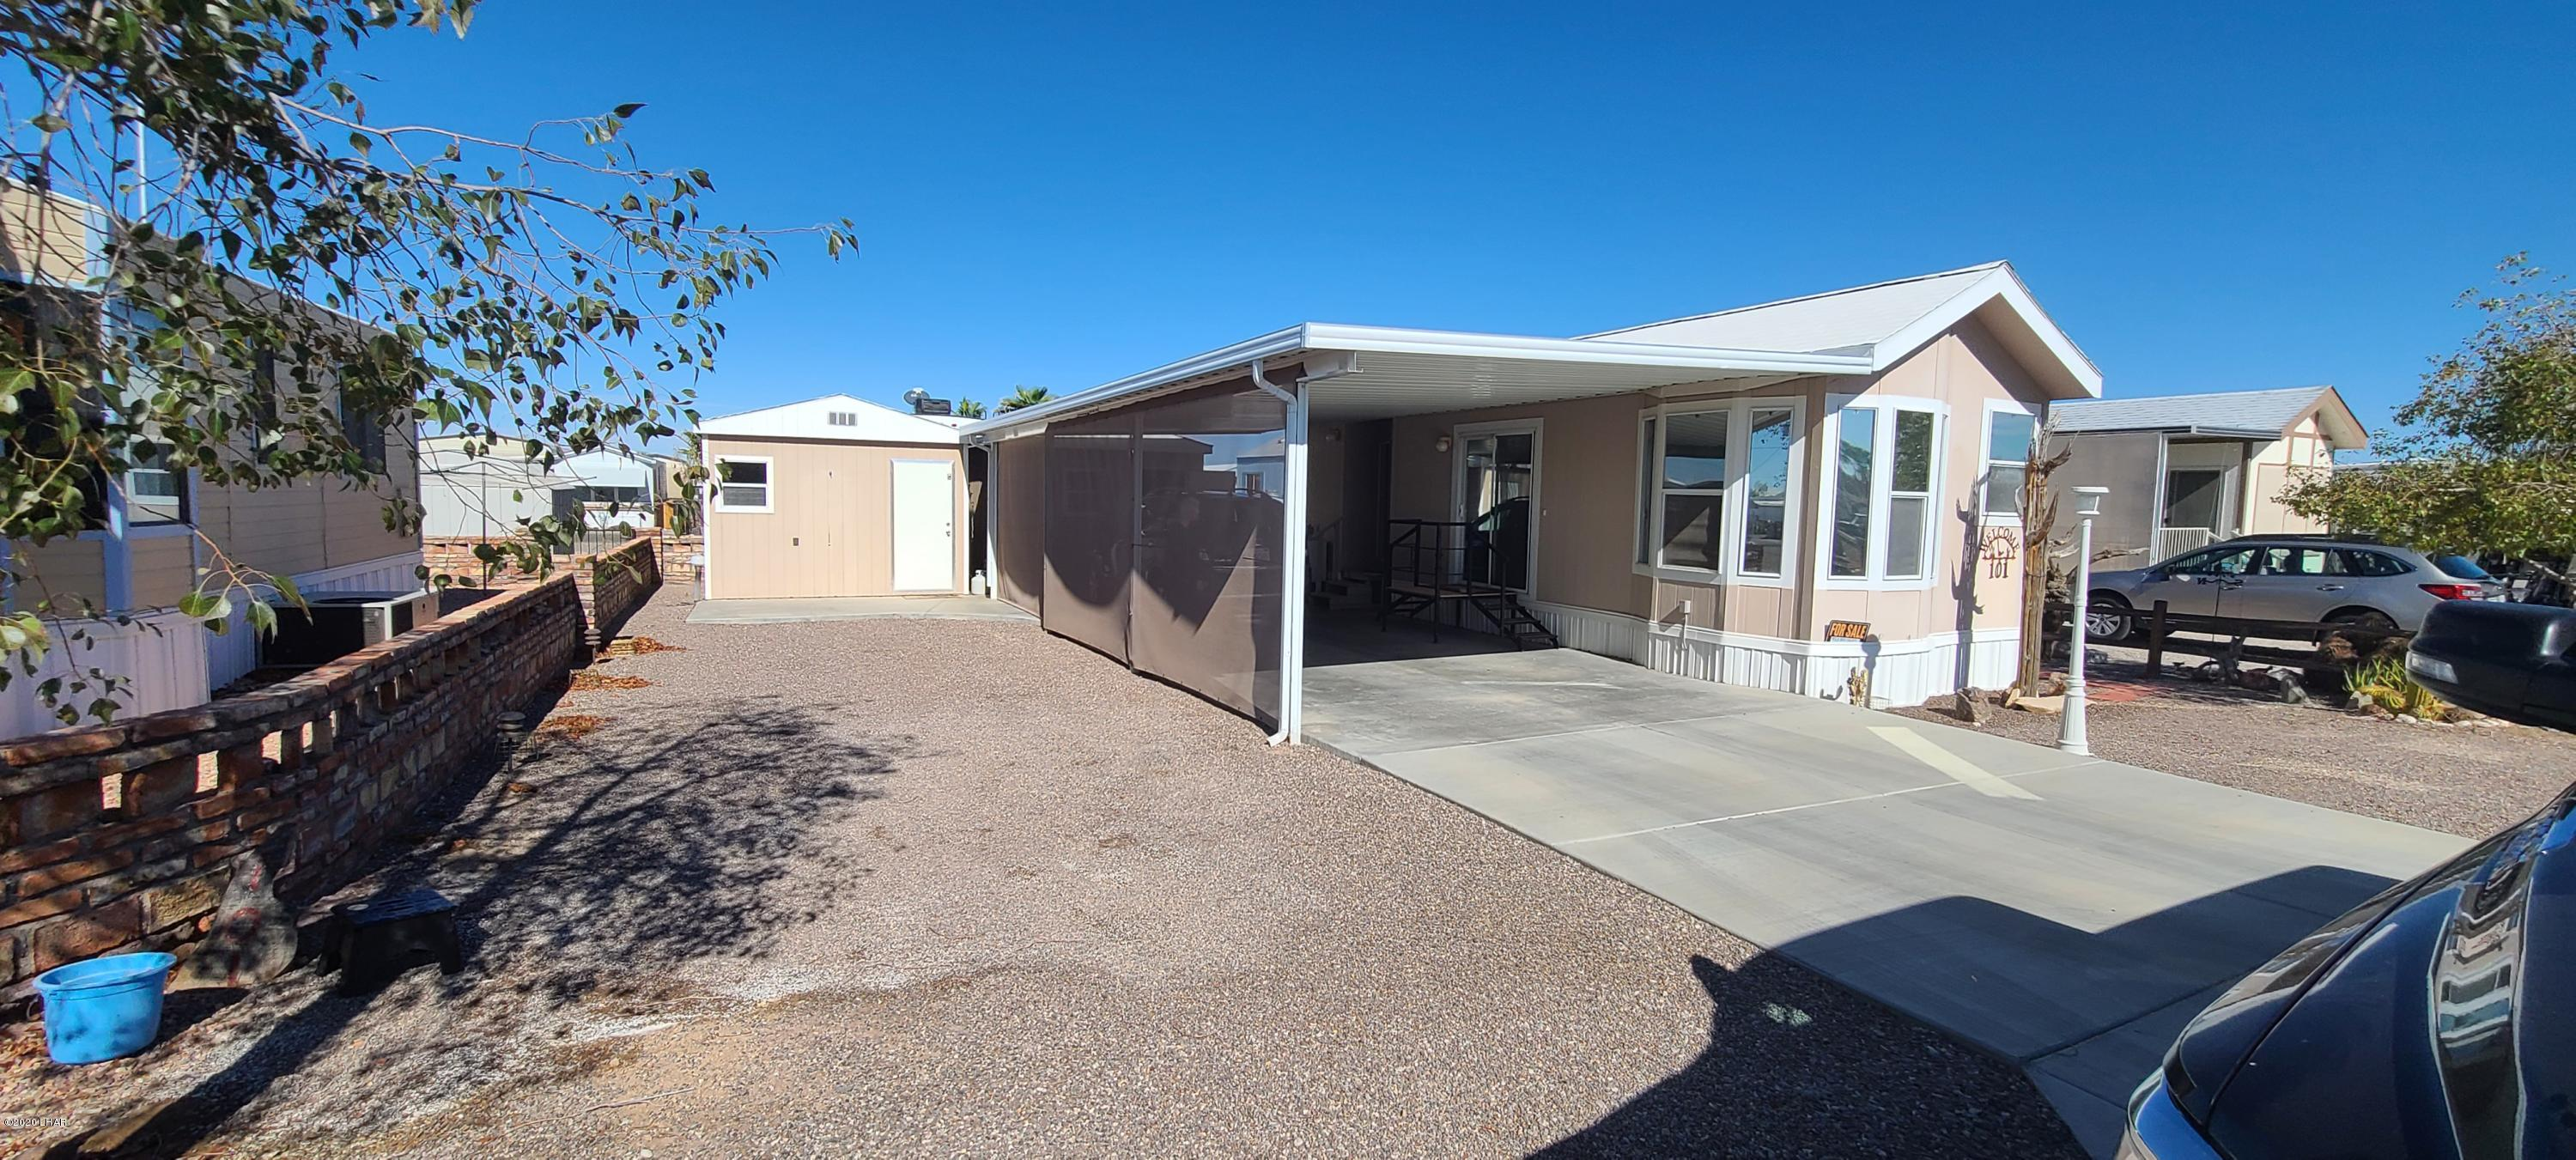 Details for 770 Mountain View, Quartzsite, AZ 85346